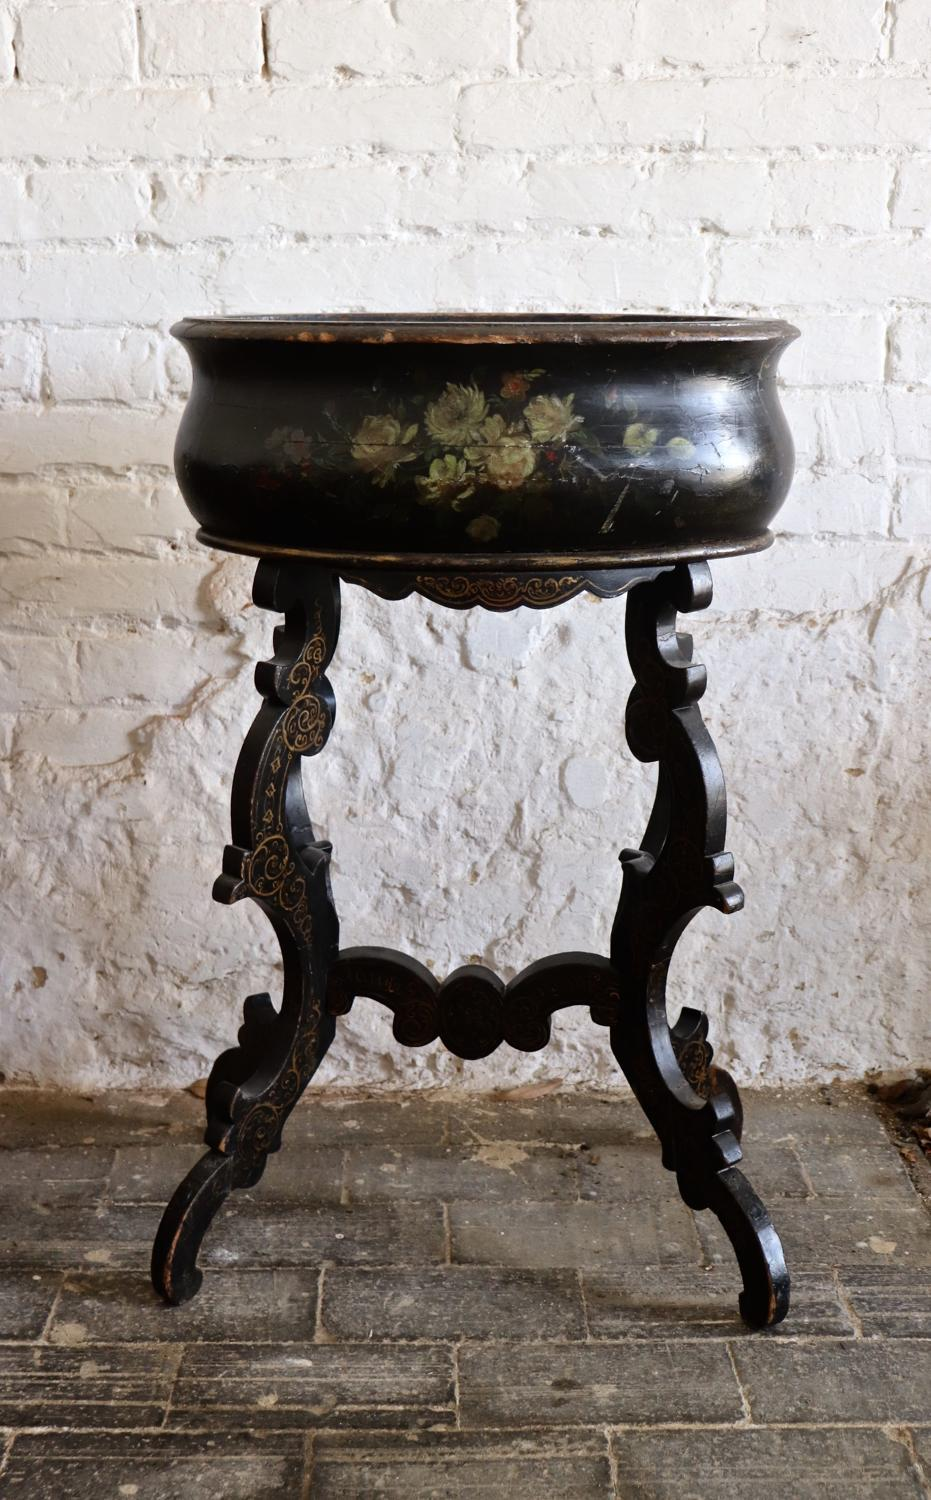 Early 20th century black painted planter